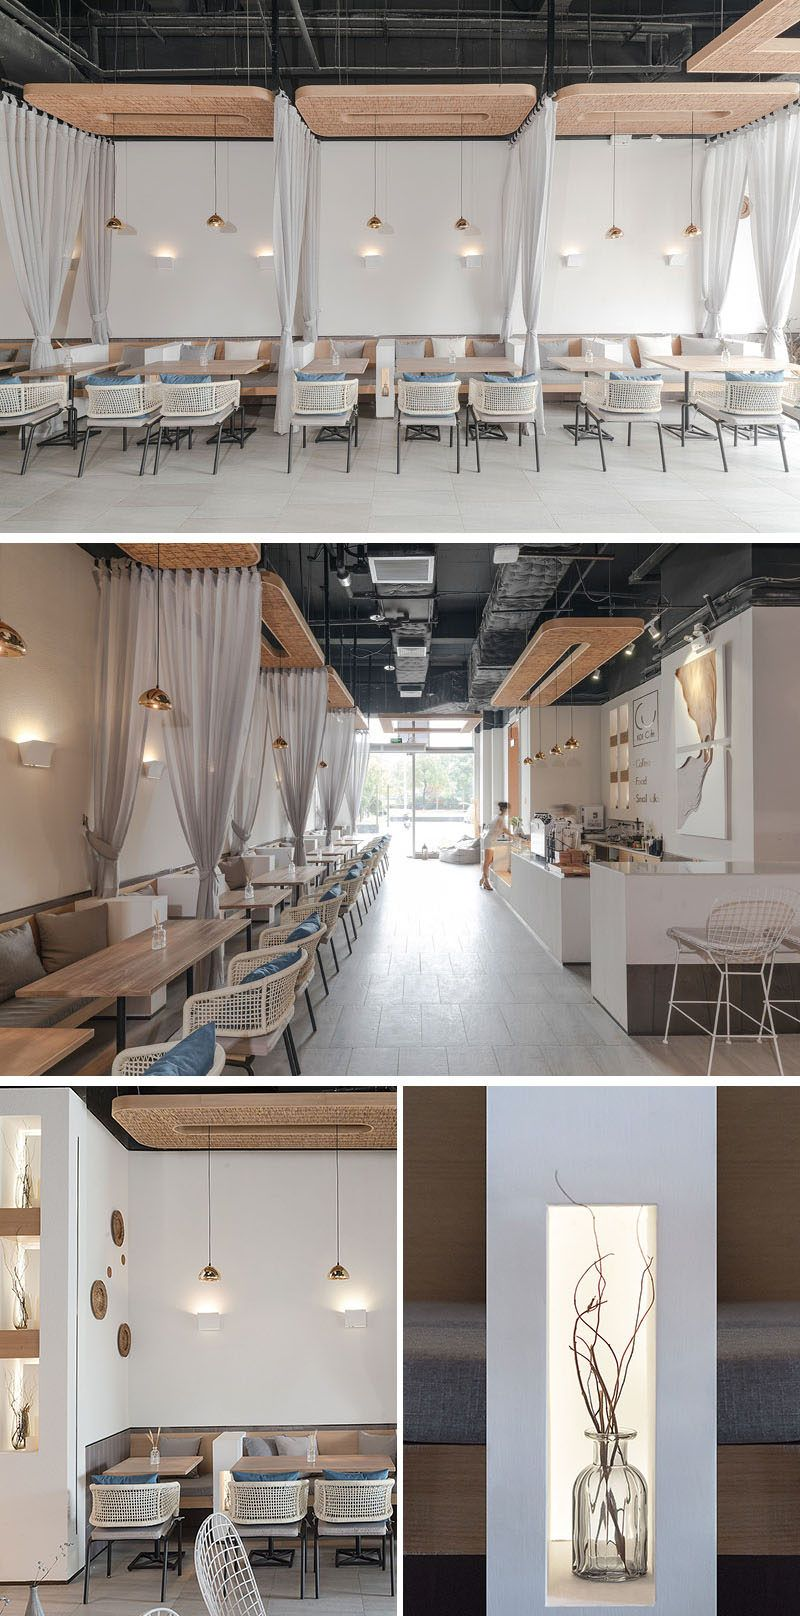 The Design Of This Cafe Was Inspired By Travels To Italy And Indonesia Cafe Seating Cafe Interior Design Cafe Design